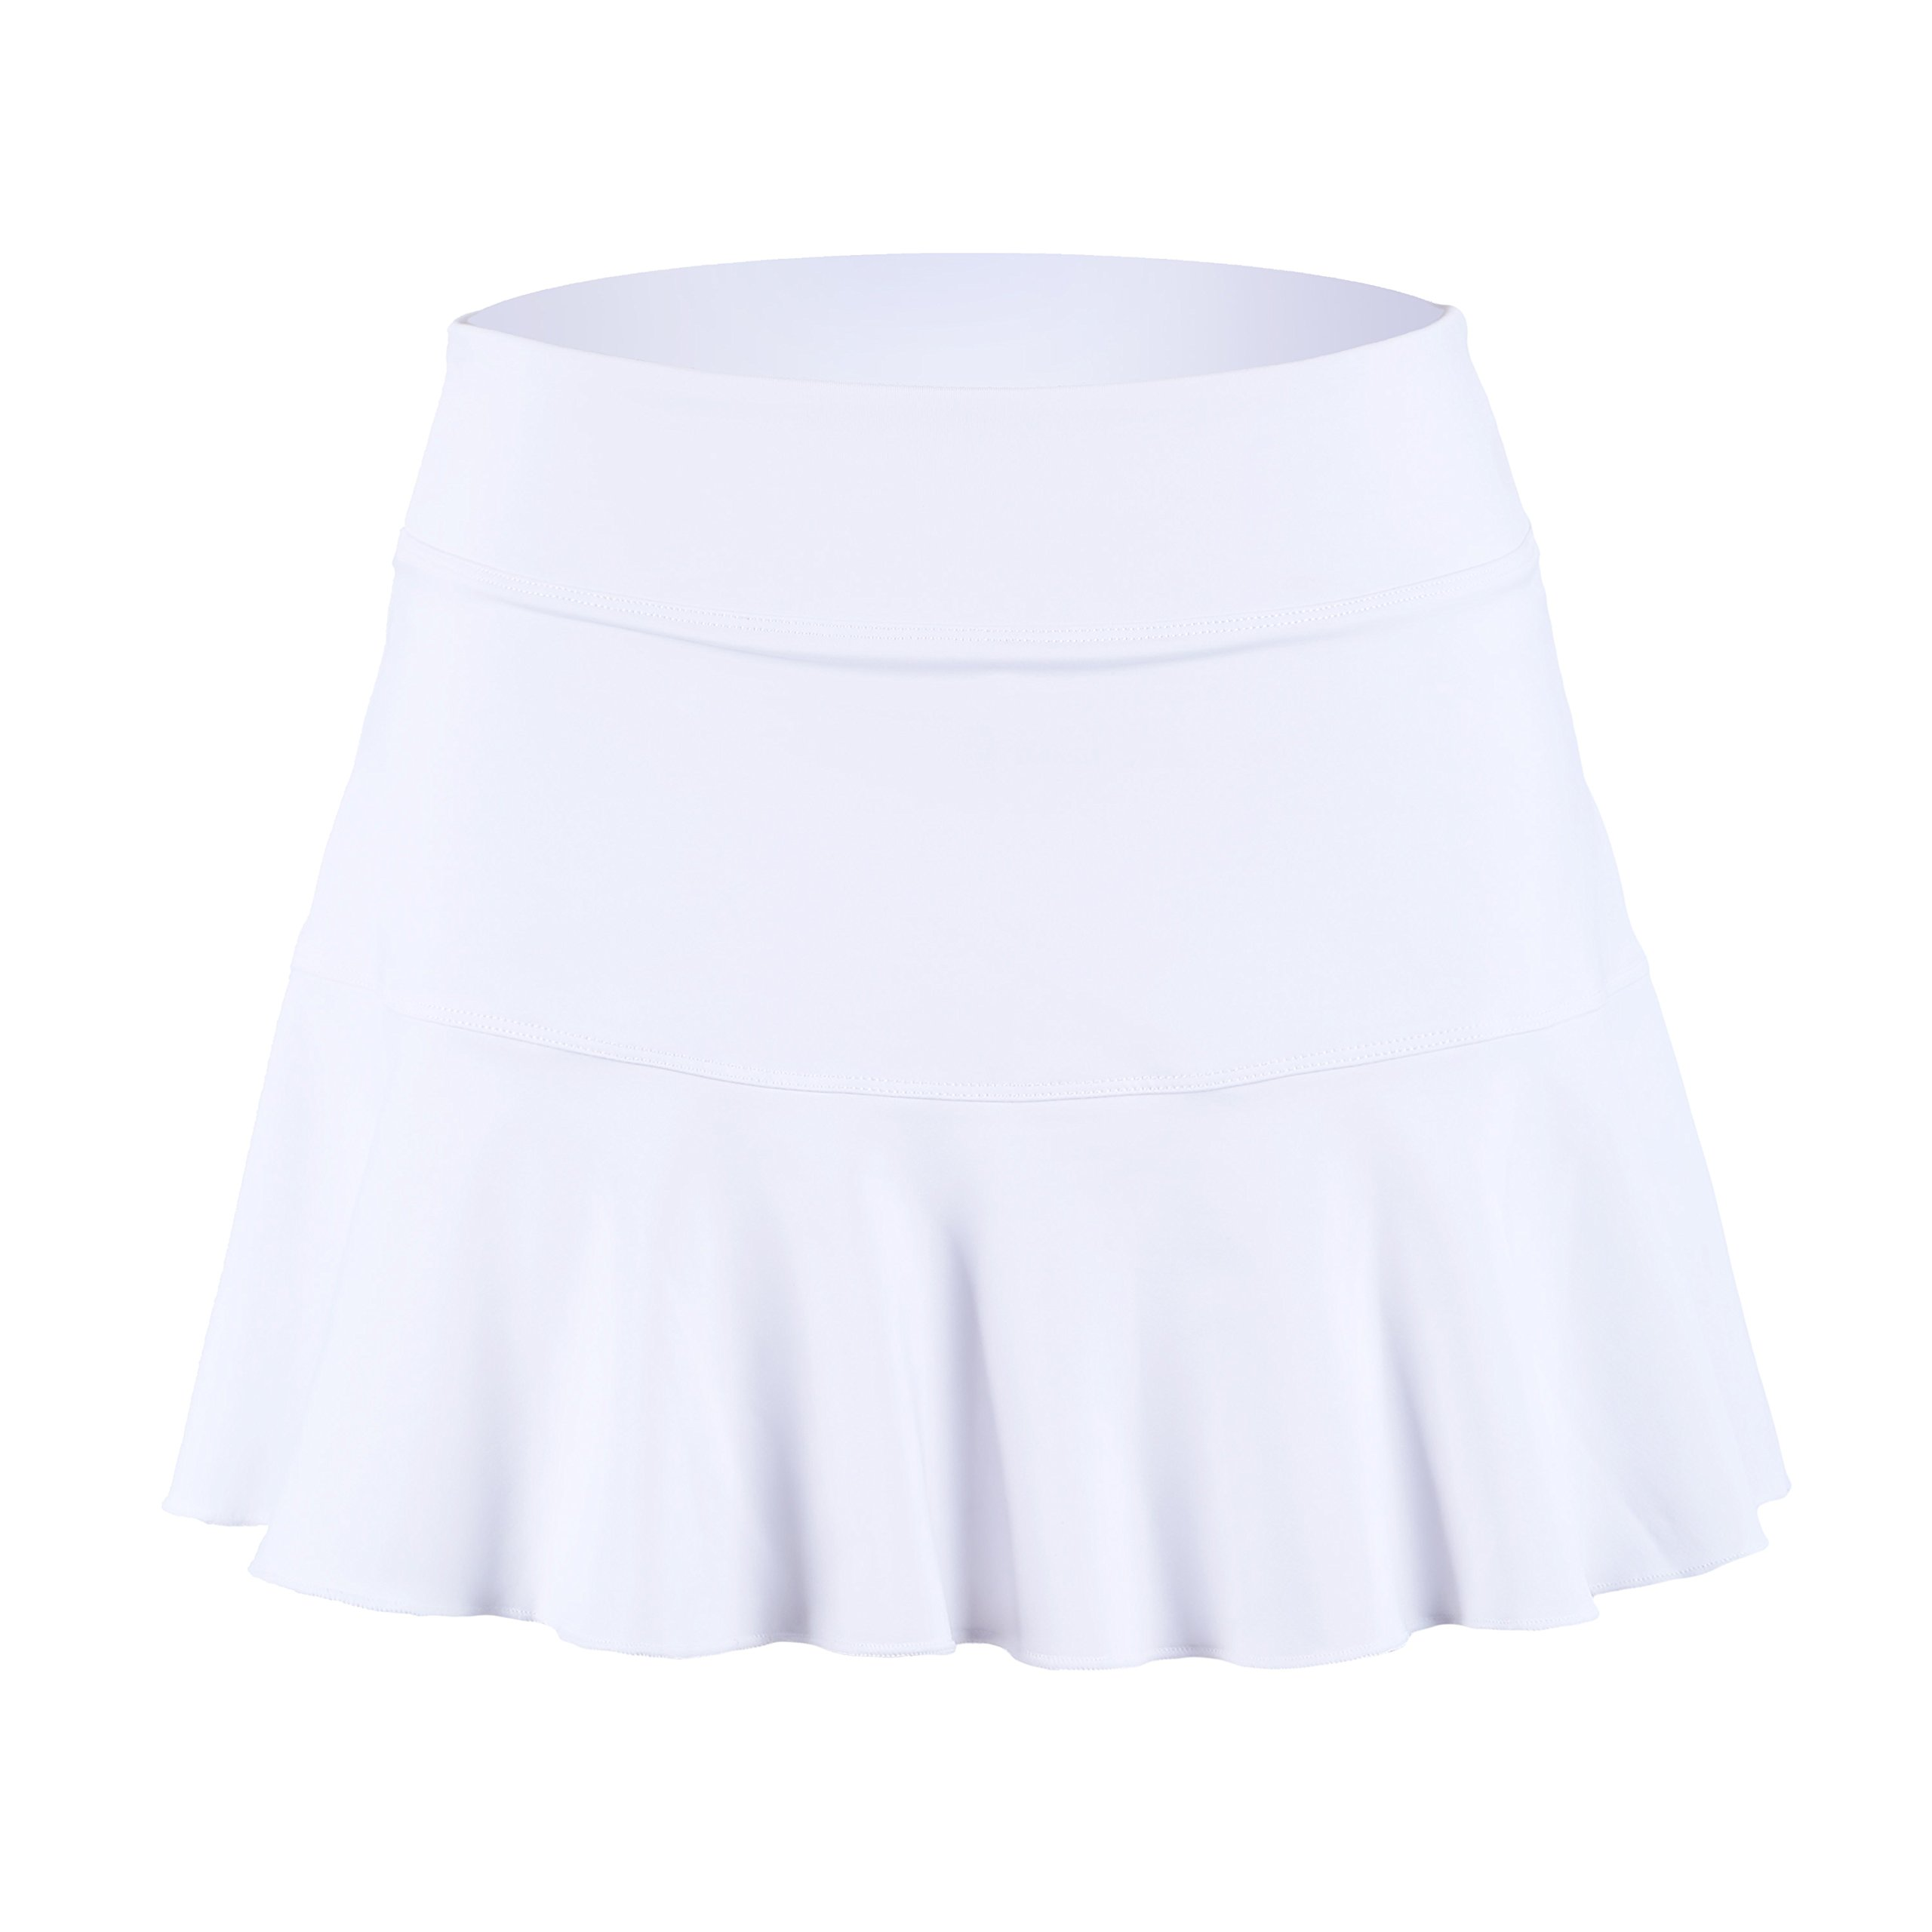 32e-SANERYI Women's Basic Elastic Tennis Skirt with Shorts Active Skort (sk25,S,White)